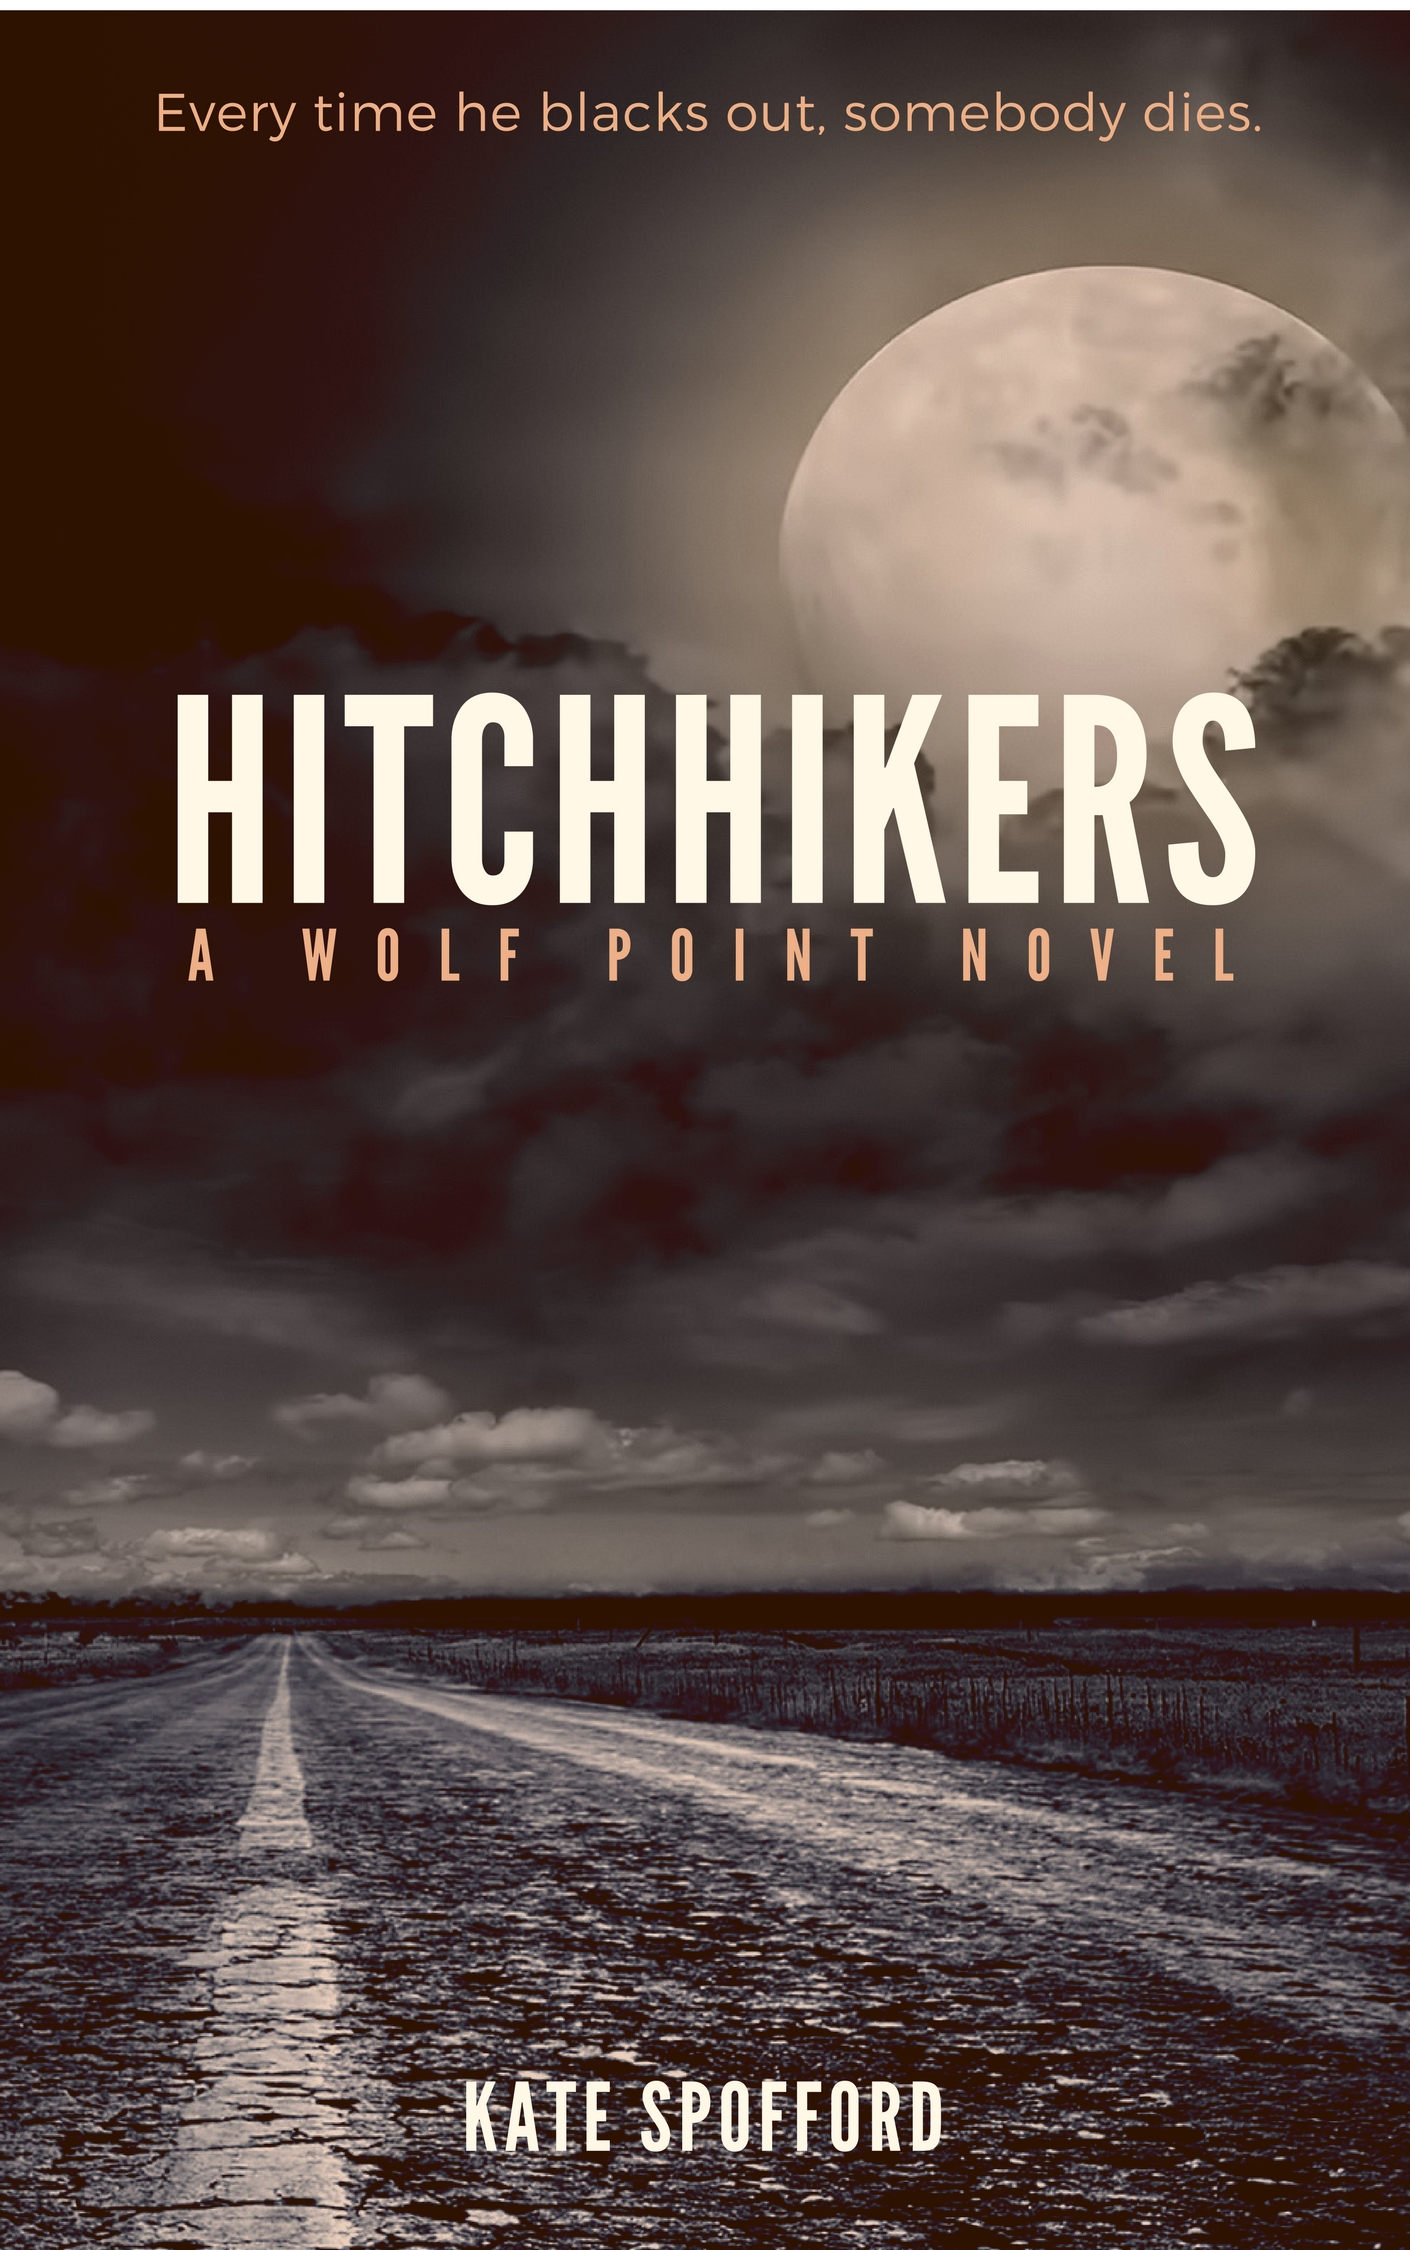 Copy of hitchhikers